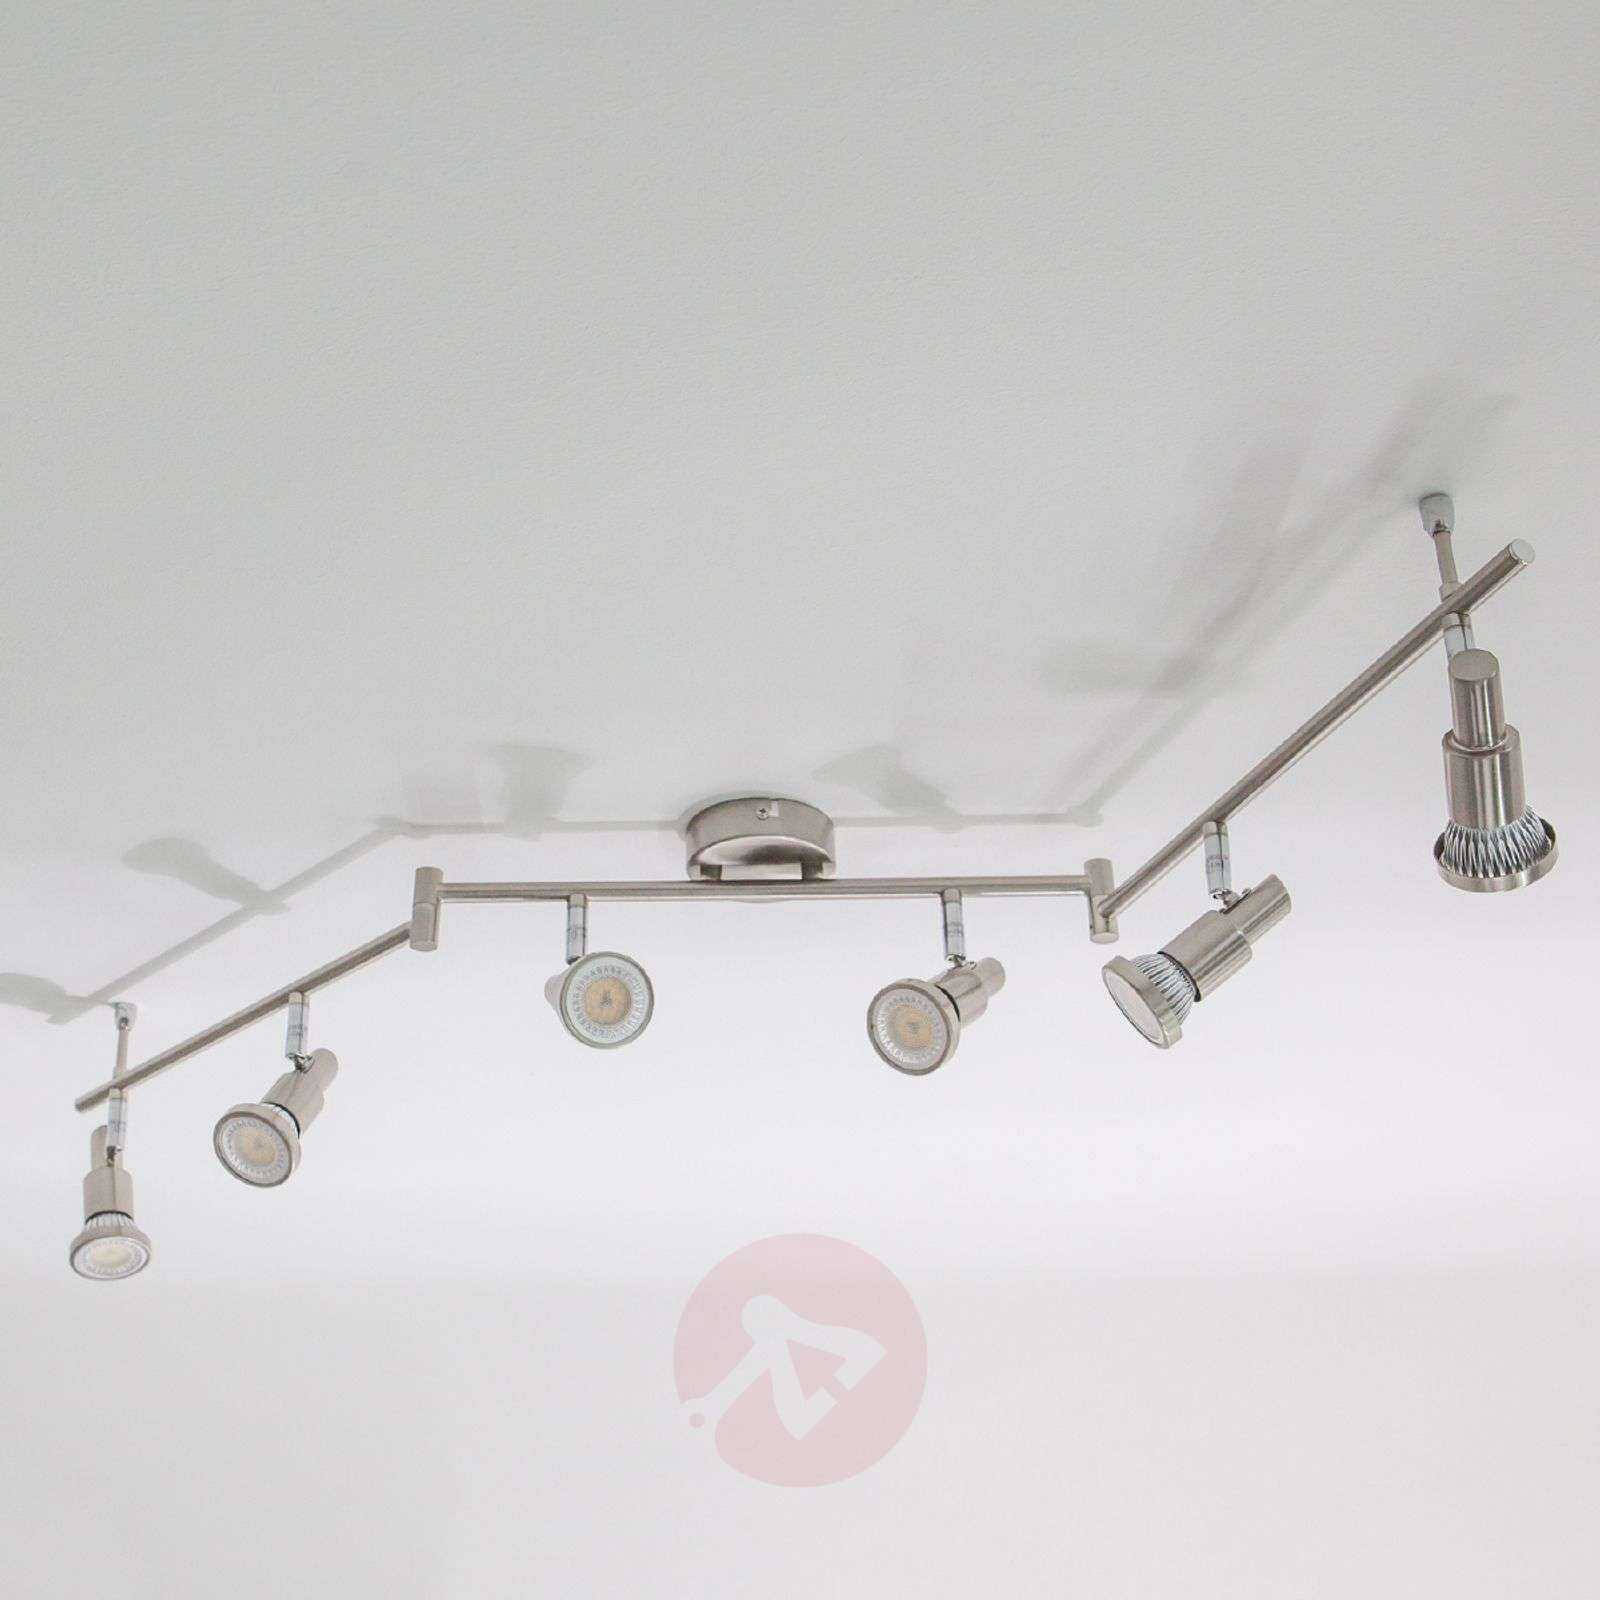 Plafonnier LED Aron aspect nickel à 6 lampes-9950324-02